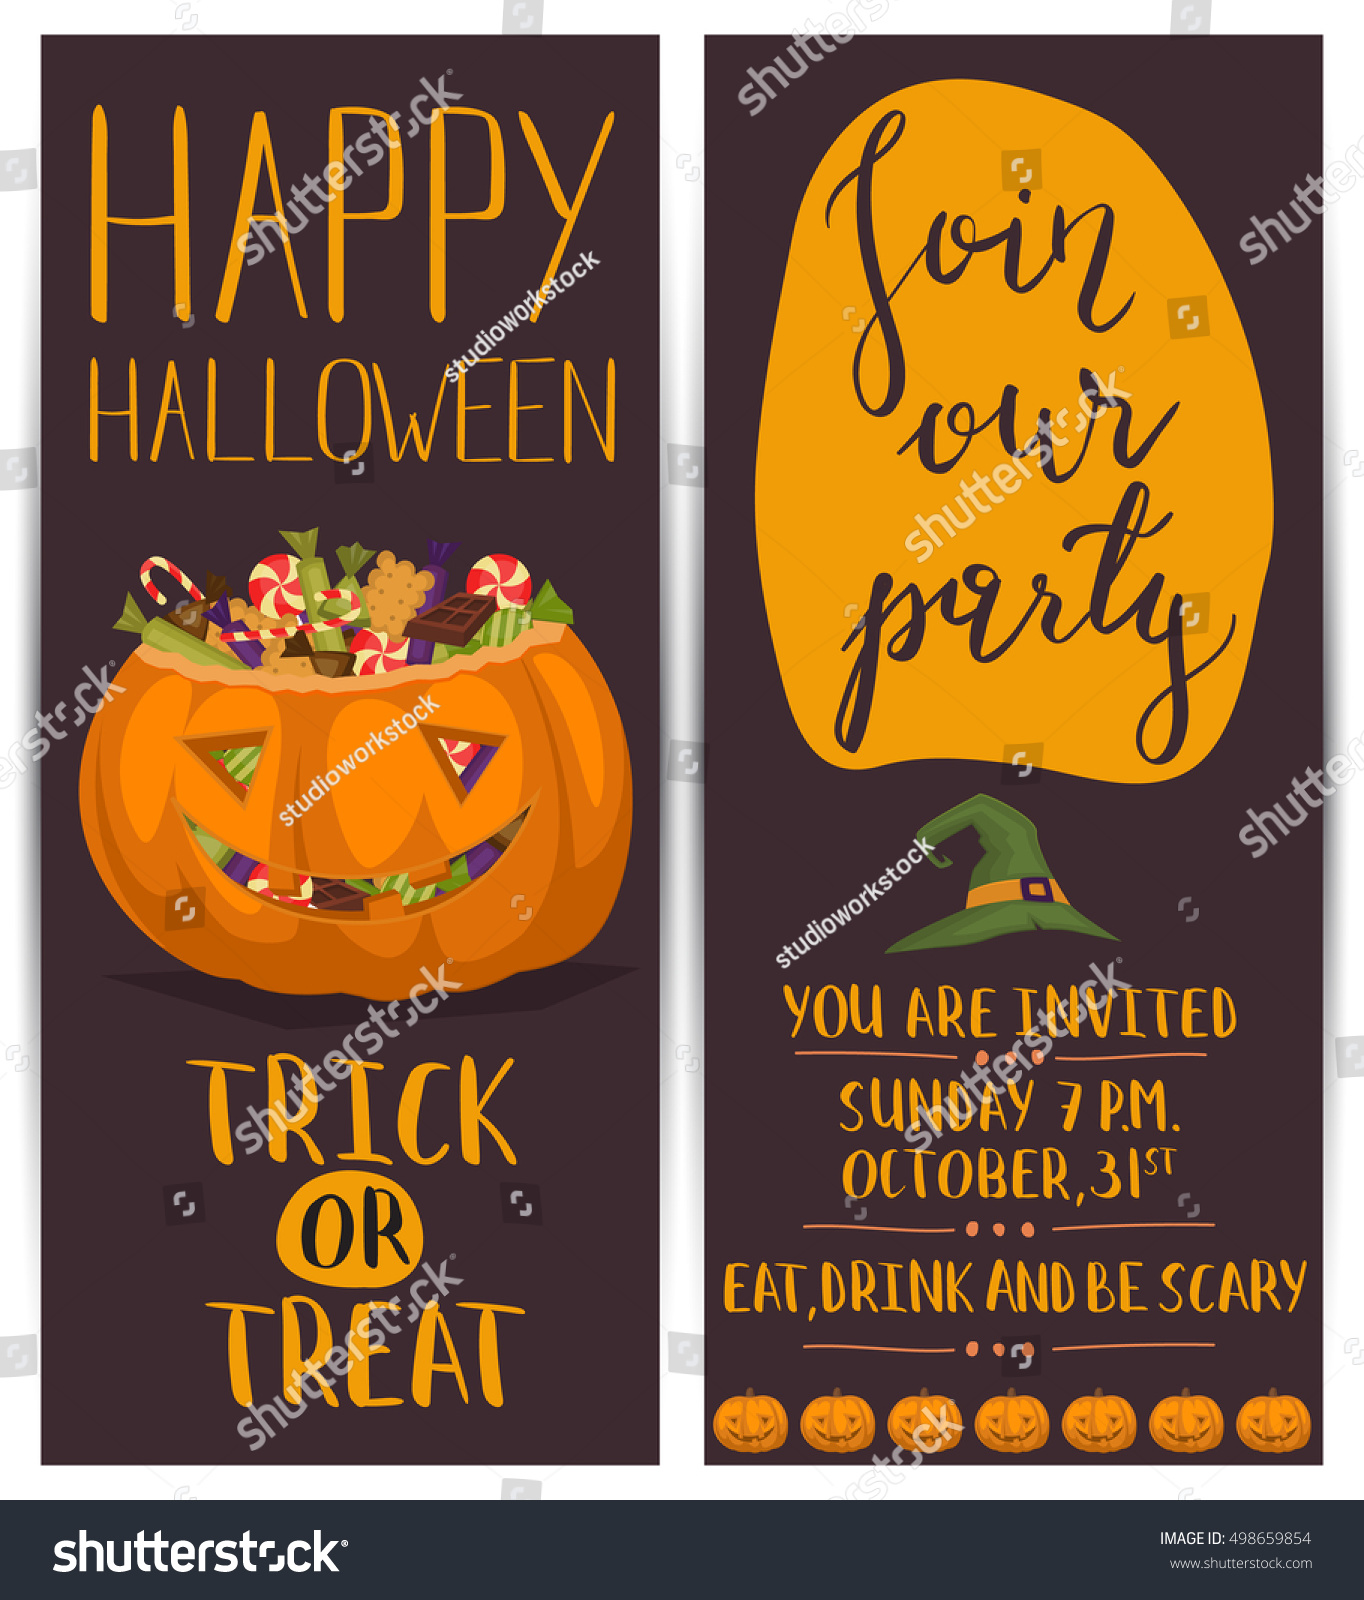 Vintage Halloween Party Flyers Scary Pumpkin Stock Vector ...